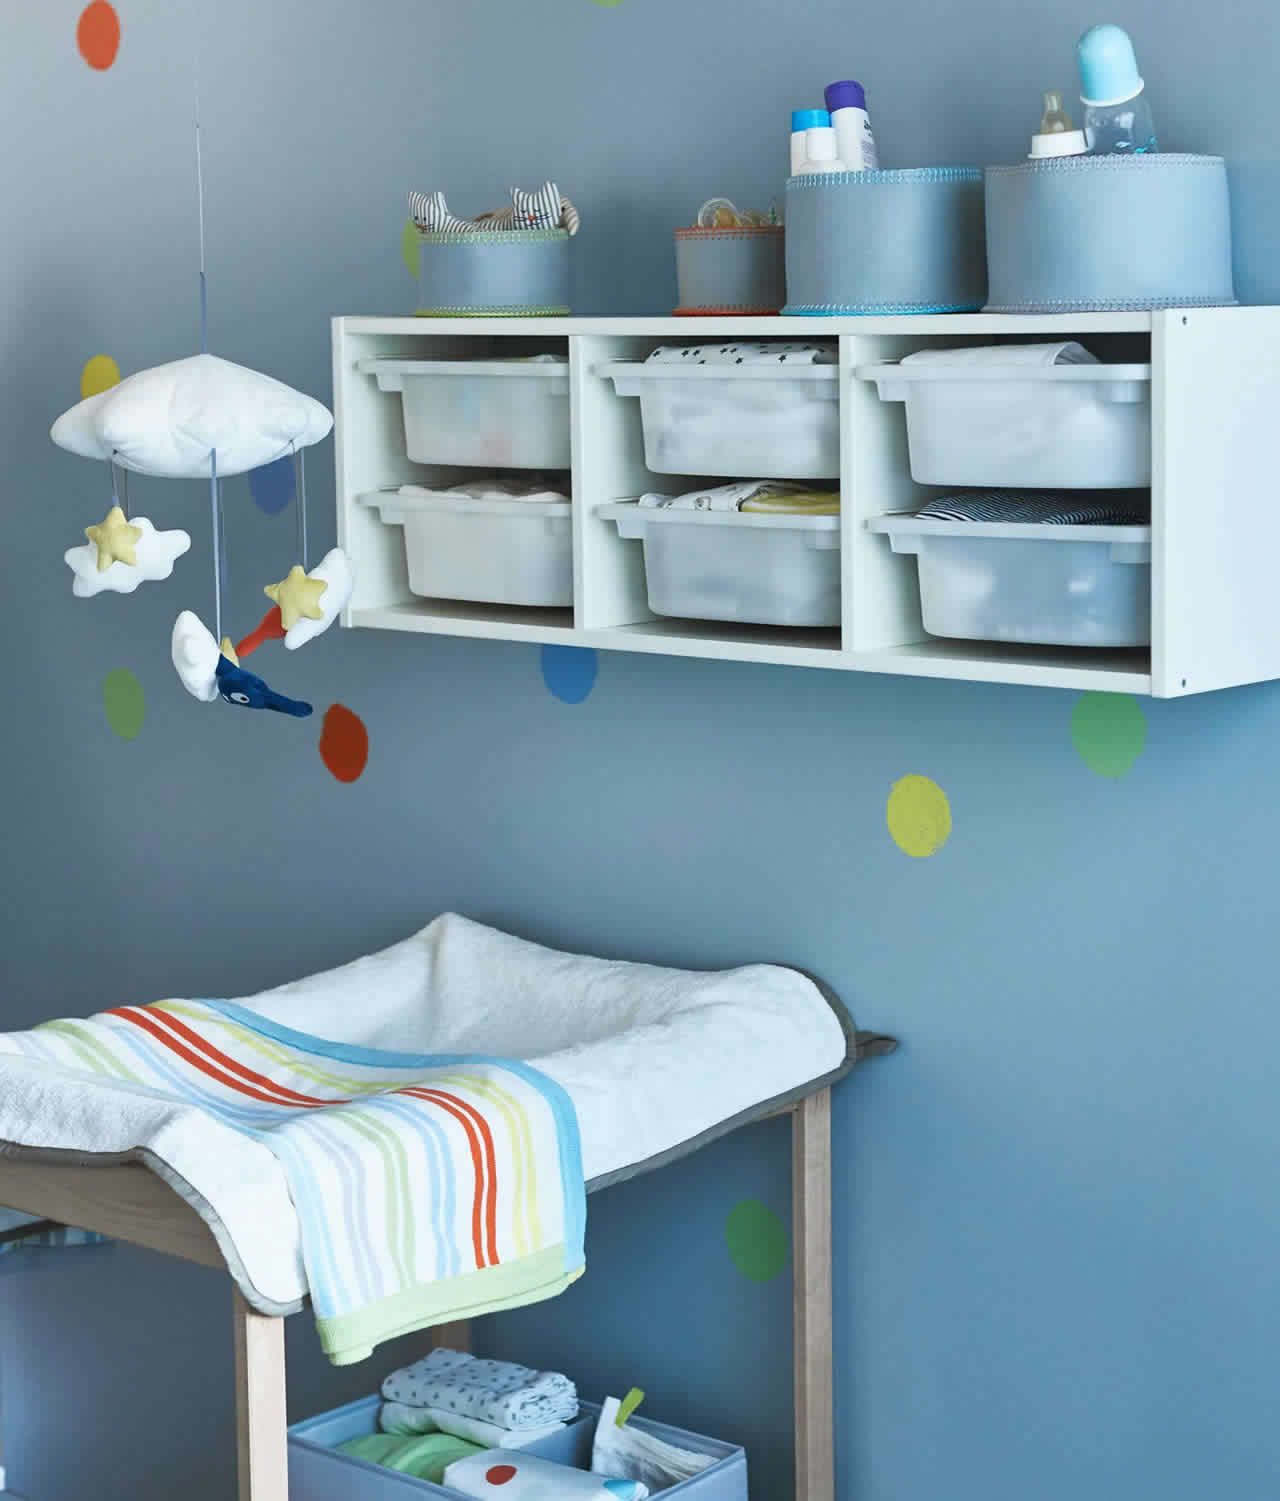 Nursery Décor For The Grown Ups: A Baby Room Made For Growing Up